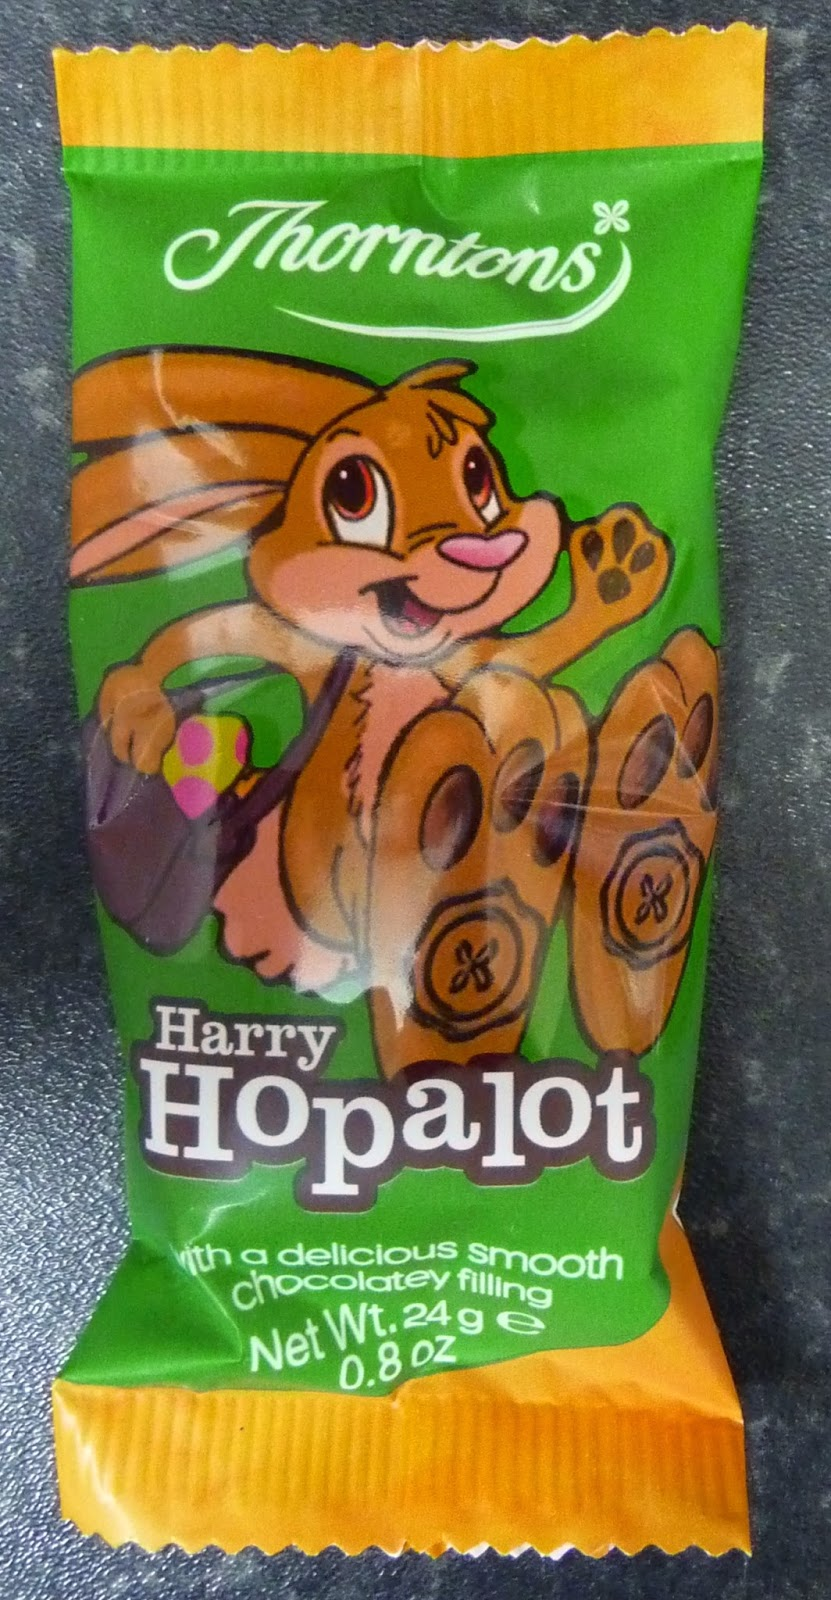 Something To Look Forward To Thorntons Harry Hopalot